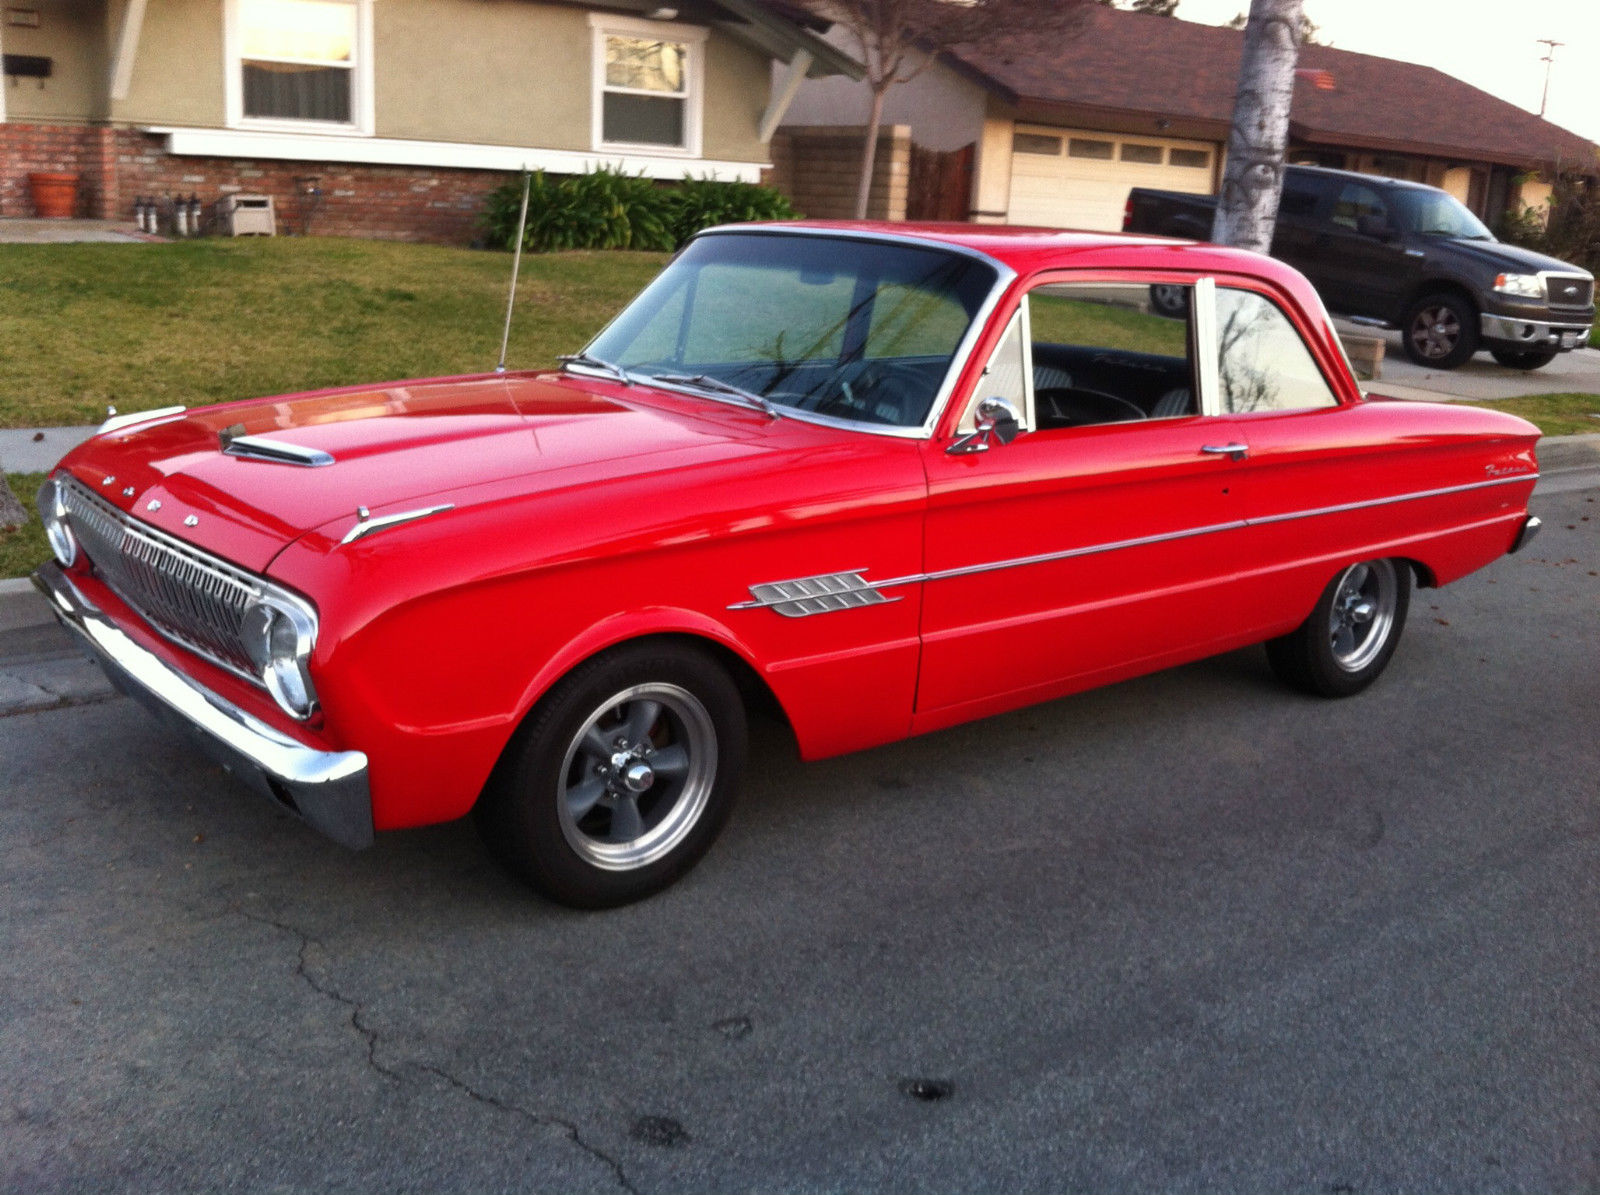 "1962 Ford Falcon Futura Really Clean Disc Brakes 8"" Newer Paint New Upholstery - Classic Ford"